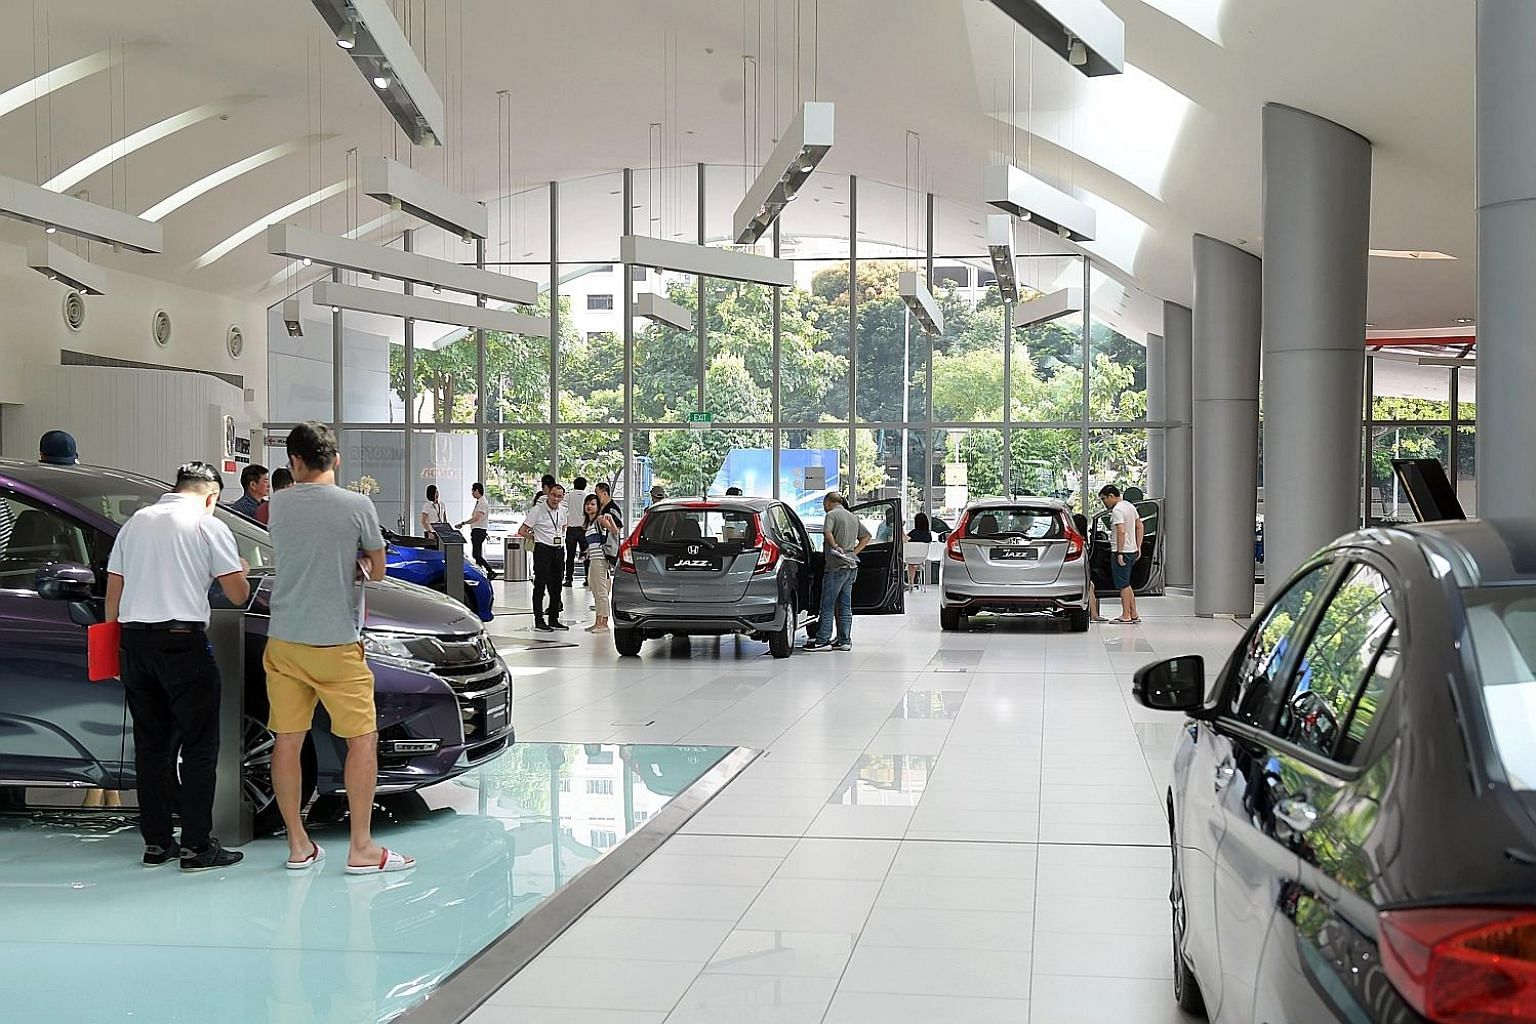 Applicants do not need to show that they have been affected by the Covid-19 crisis to obtain the relief, said the Monetary Authority of Singapore. Their credit score will also not be affected. OCBC Bank started receiving moratorium requests for car l